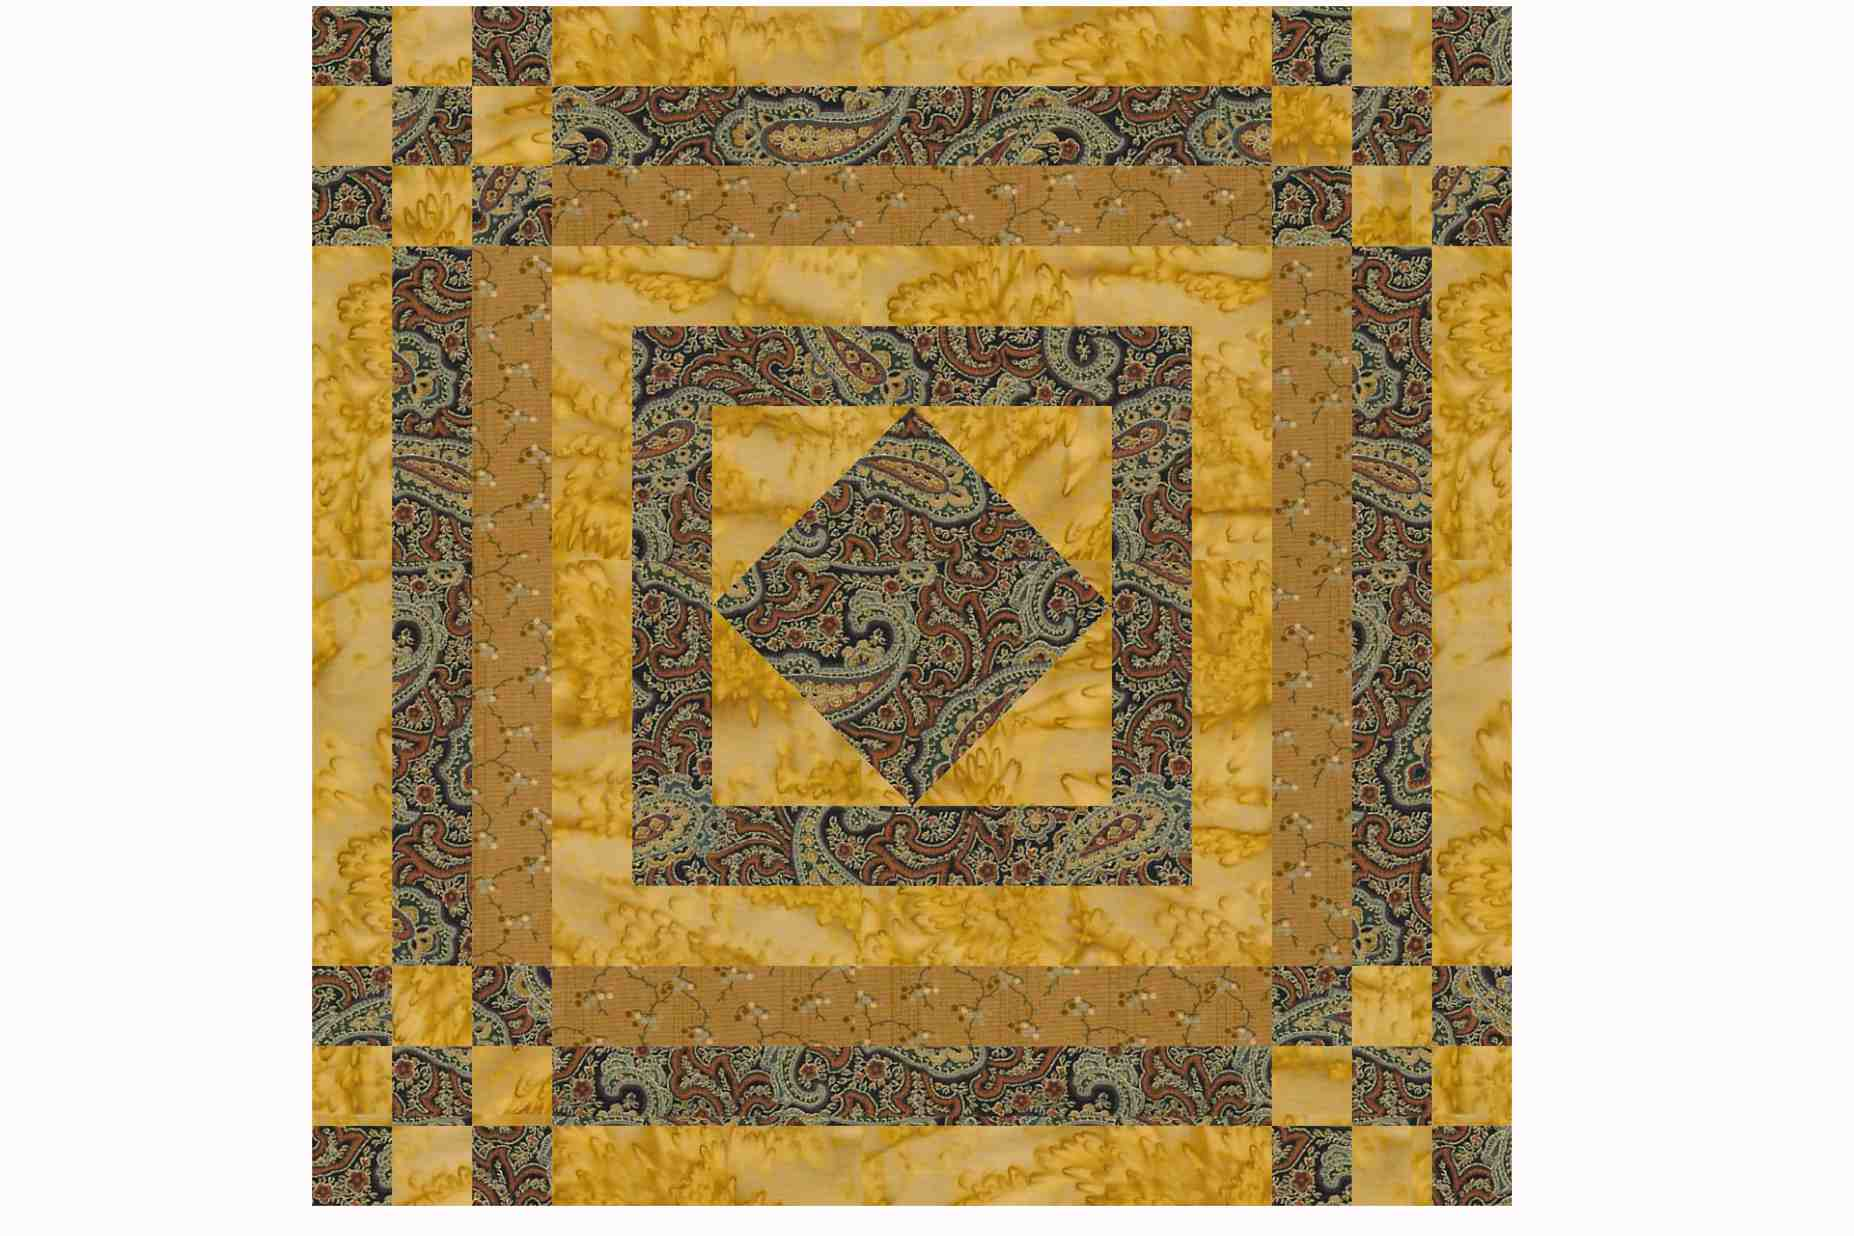 Classic Nine Patch Quilt Block Patterns